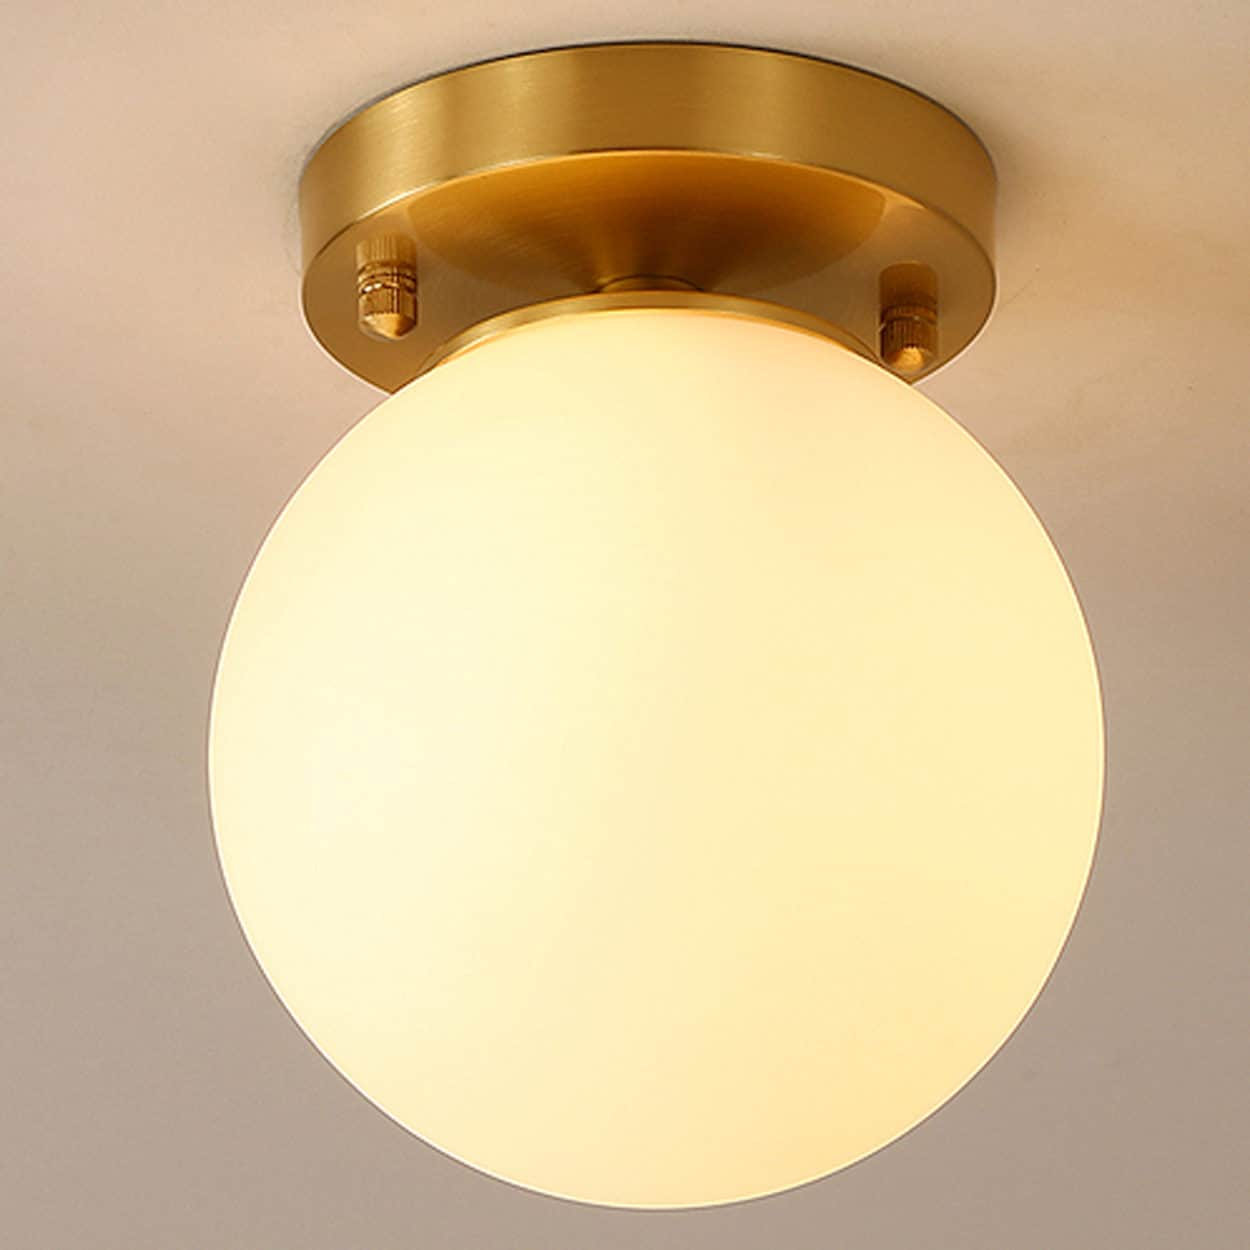 Glass Lamp Ceiling Birte Smart Glass Ball Ceiling Lamp